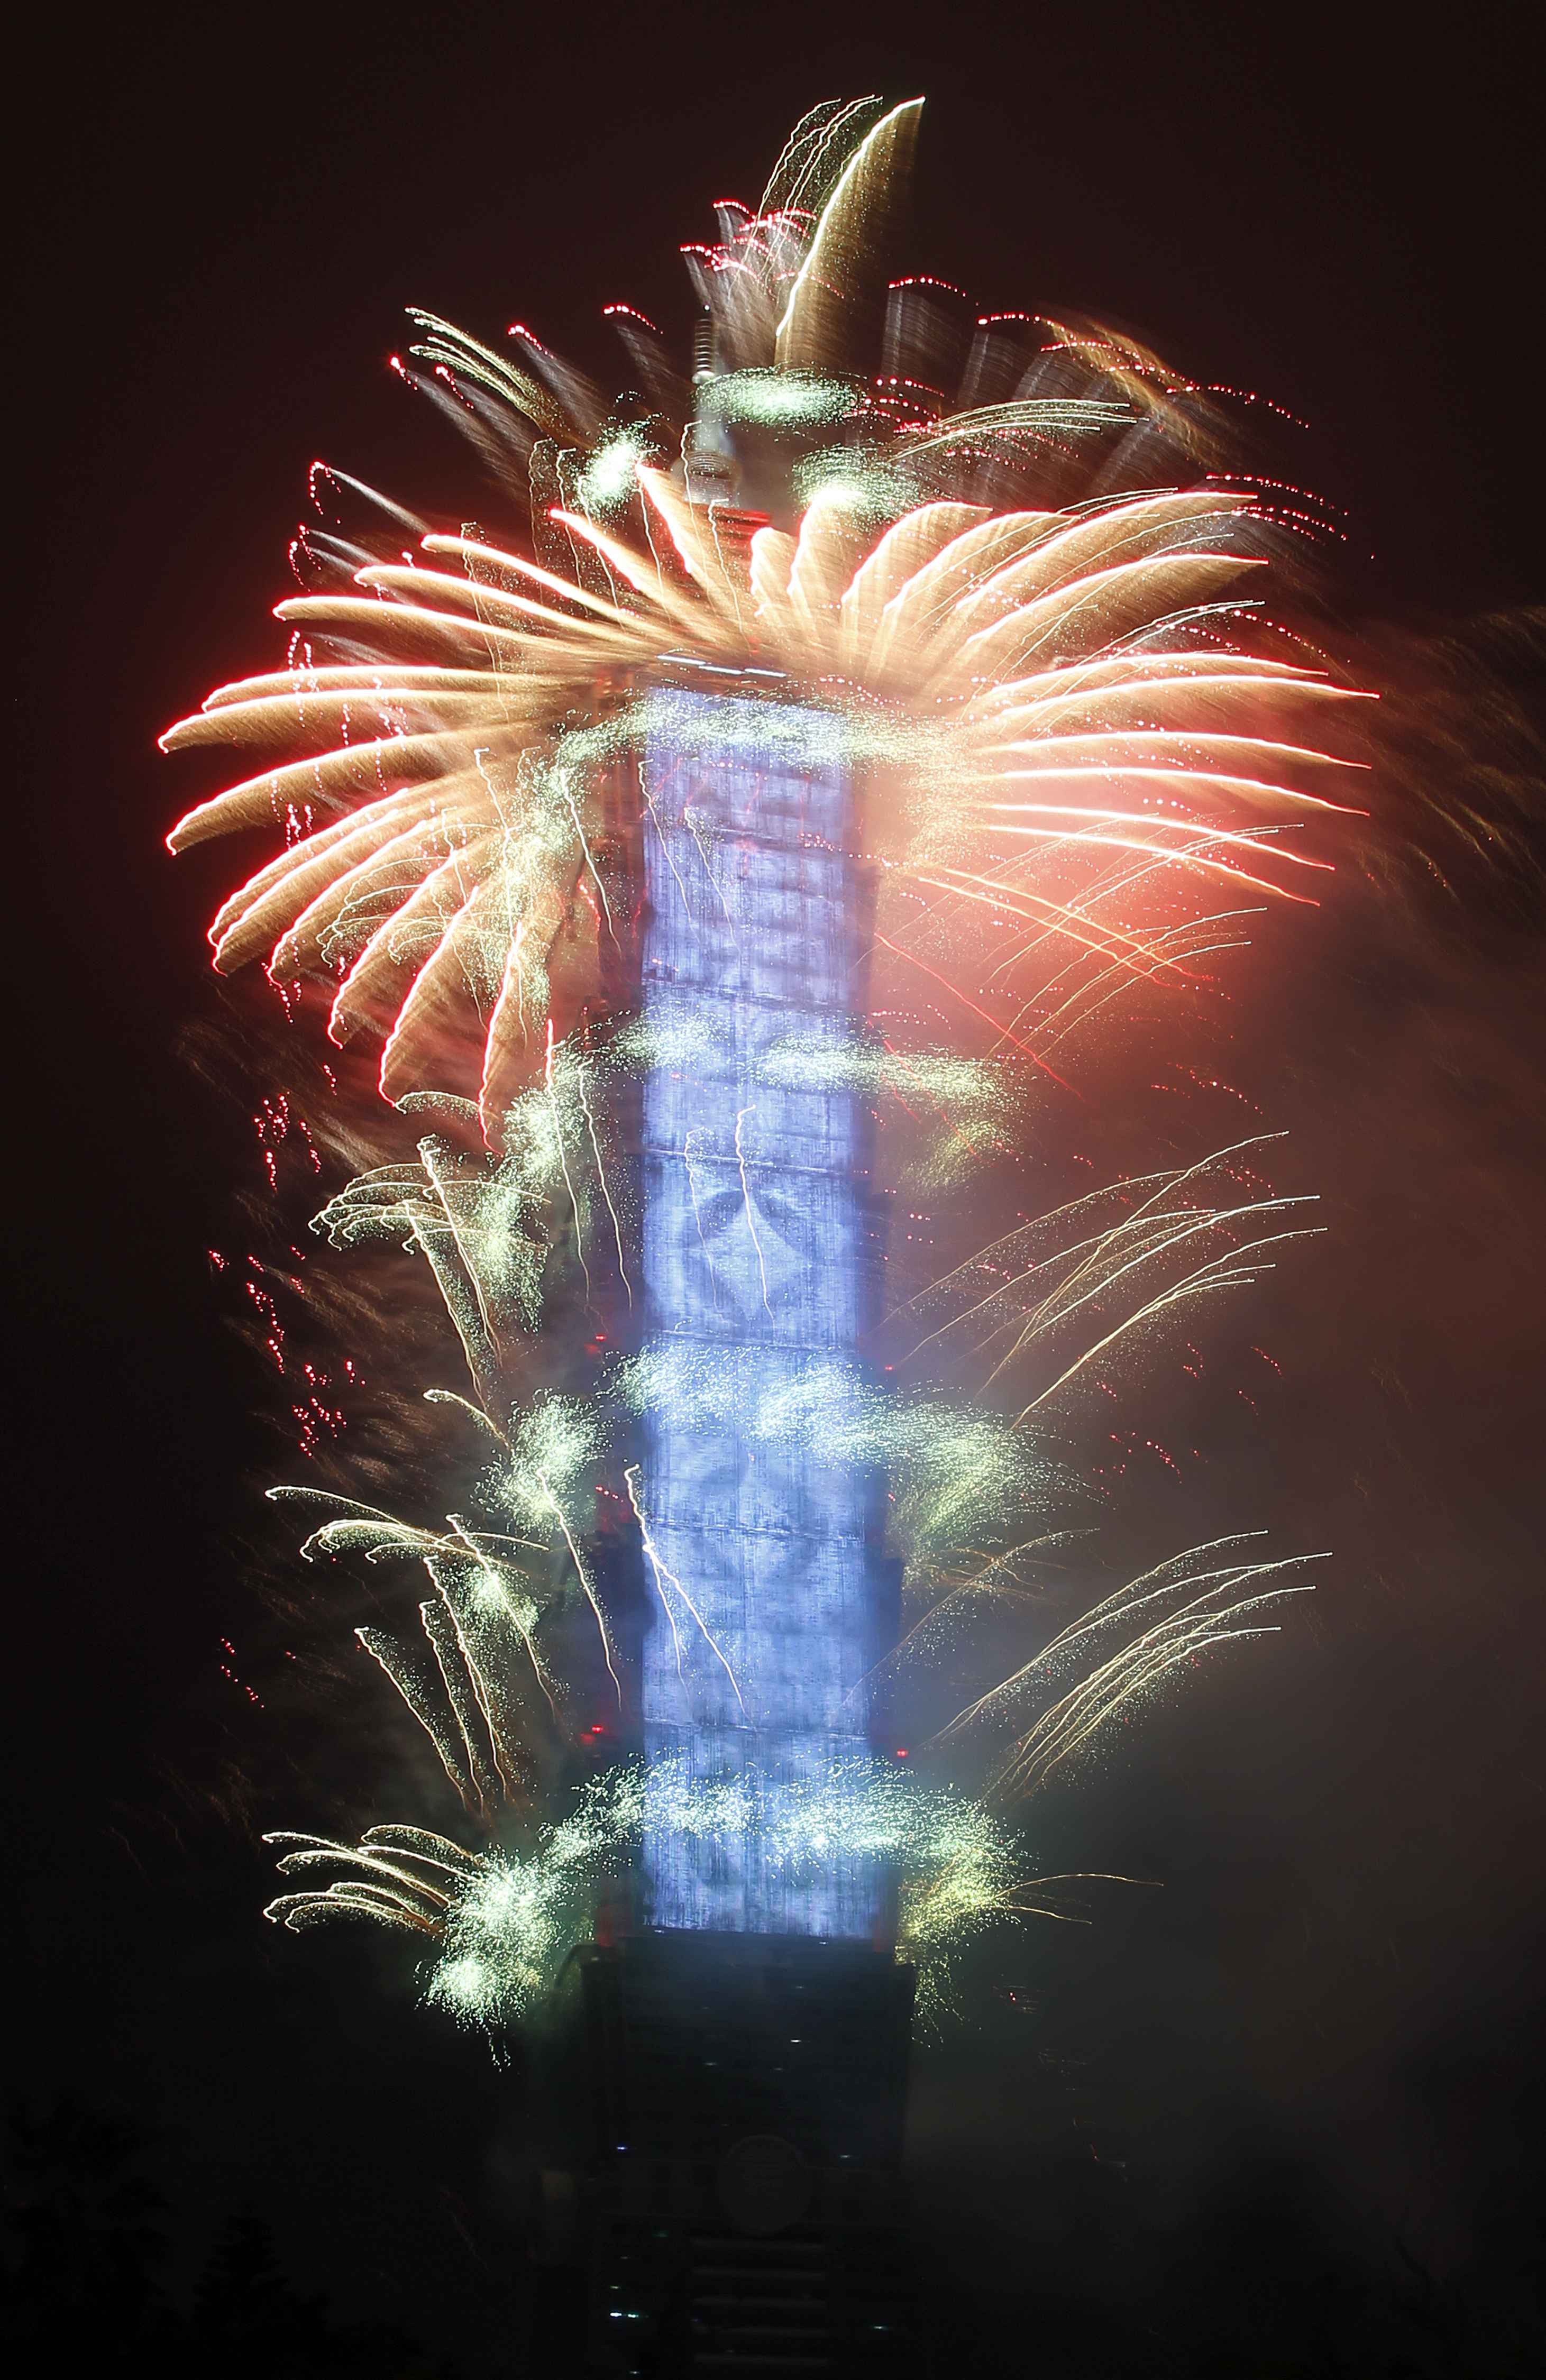 <div class='meta'><div class='origin-logo' data-origin='AP'></div><span class='caption-text' data-credit='AP Photo/Chiang Ying-ying'>Fireworks explode from the Taipei 101 building during the New Year's celebrations in Taipei, Taiwan, Monday, Jan. 1, 2018.</span></div>